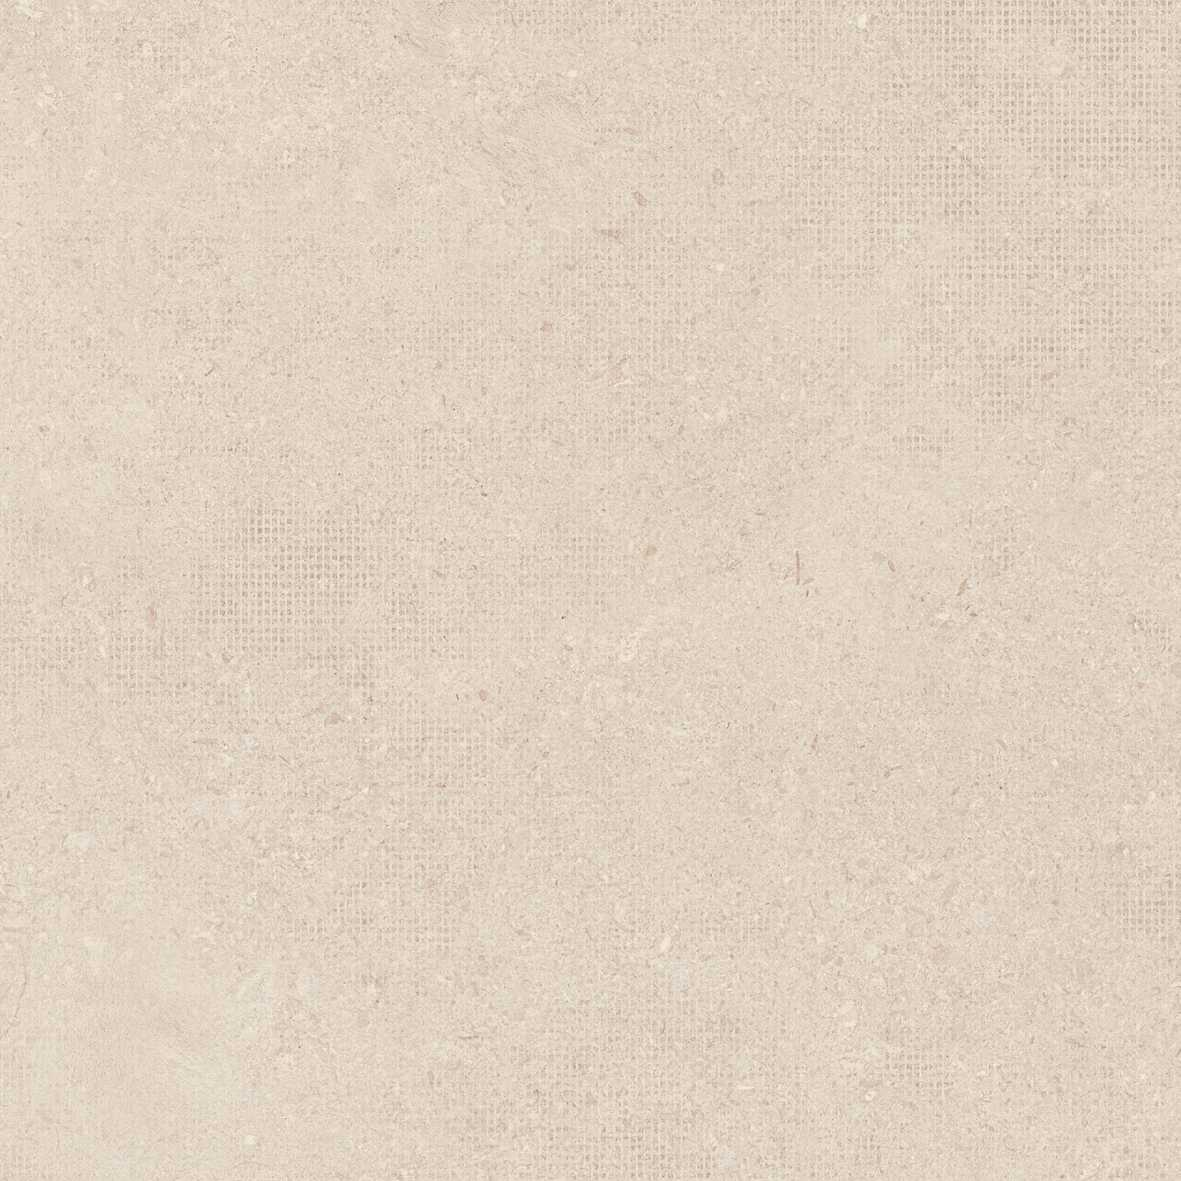 Variasi Aspen Brown  OutdoorOutdoor FlooringOutdoor Floor Tiles 1